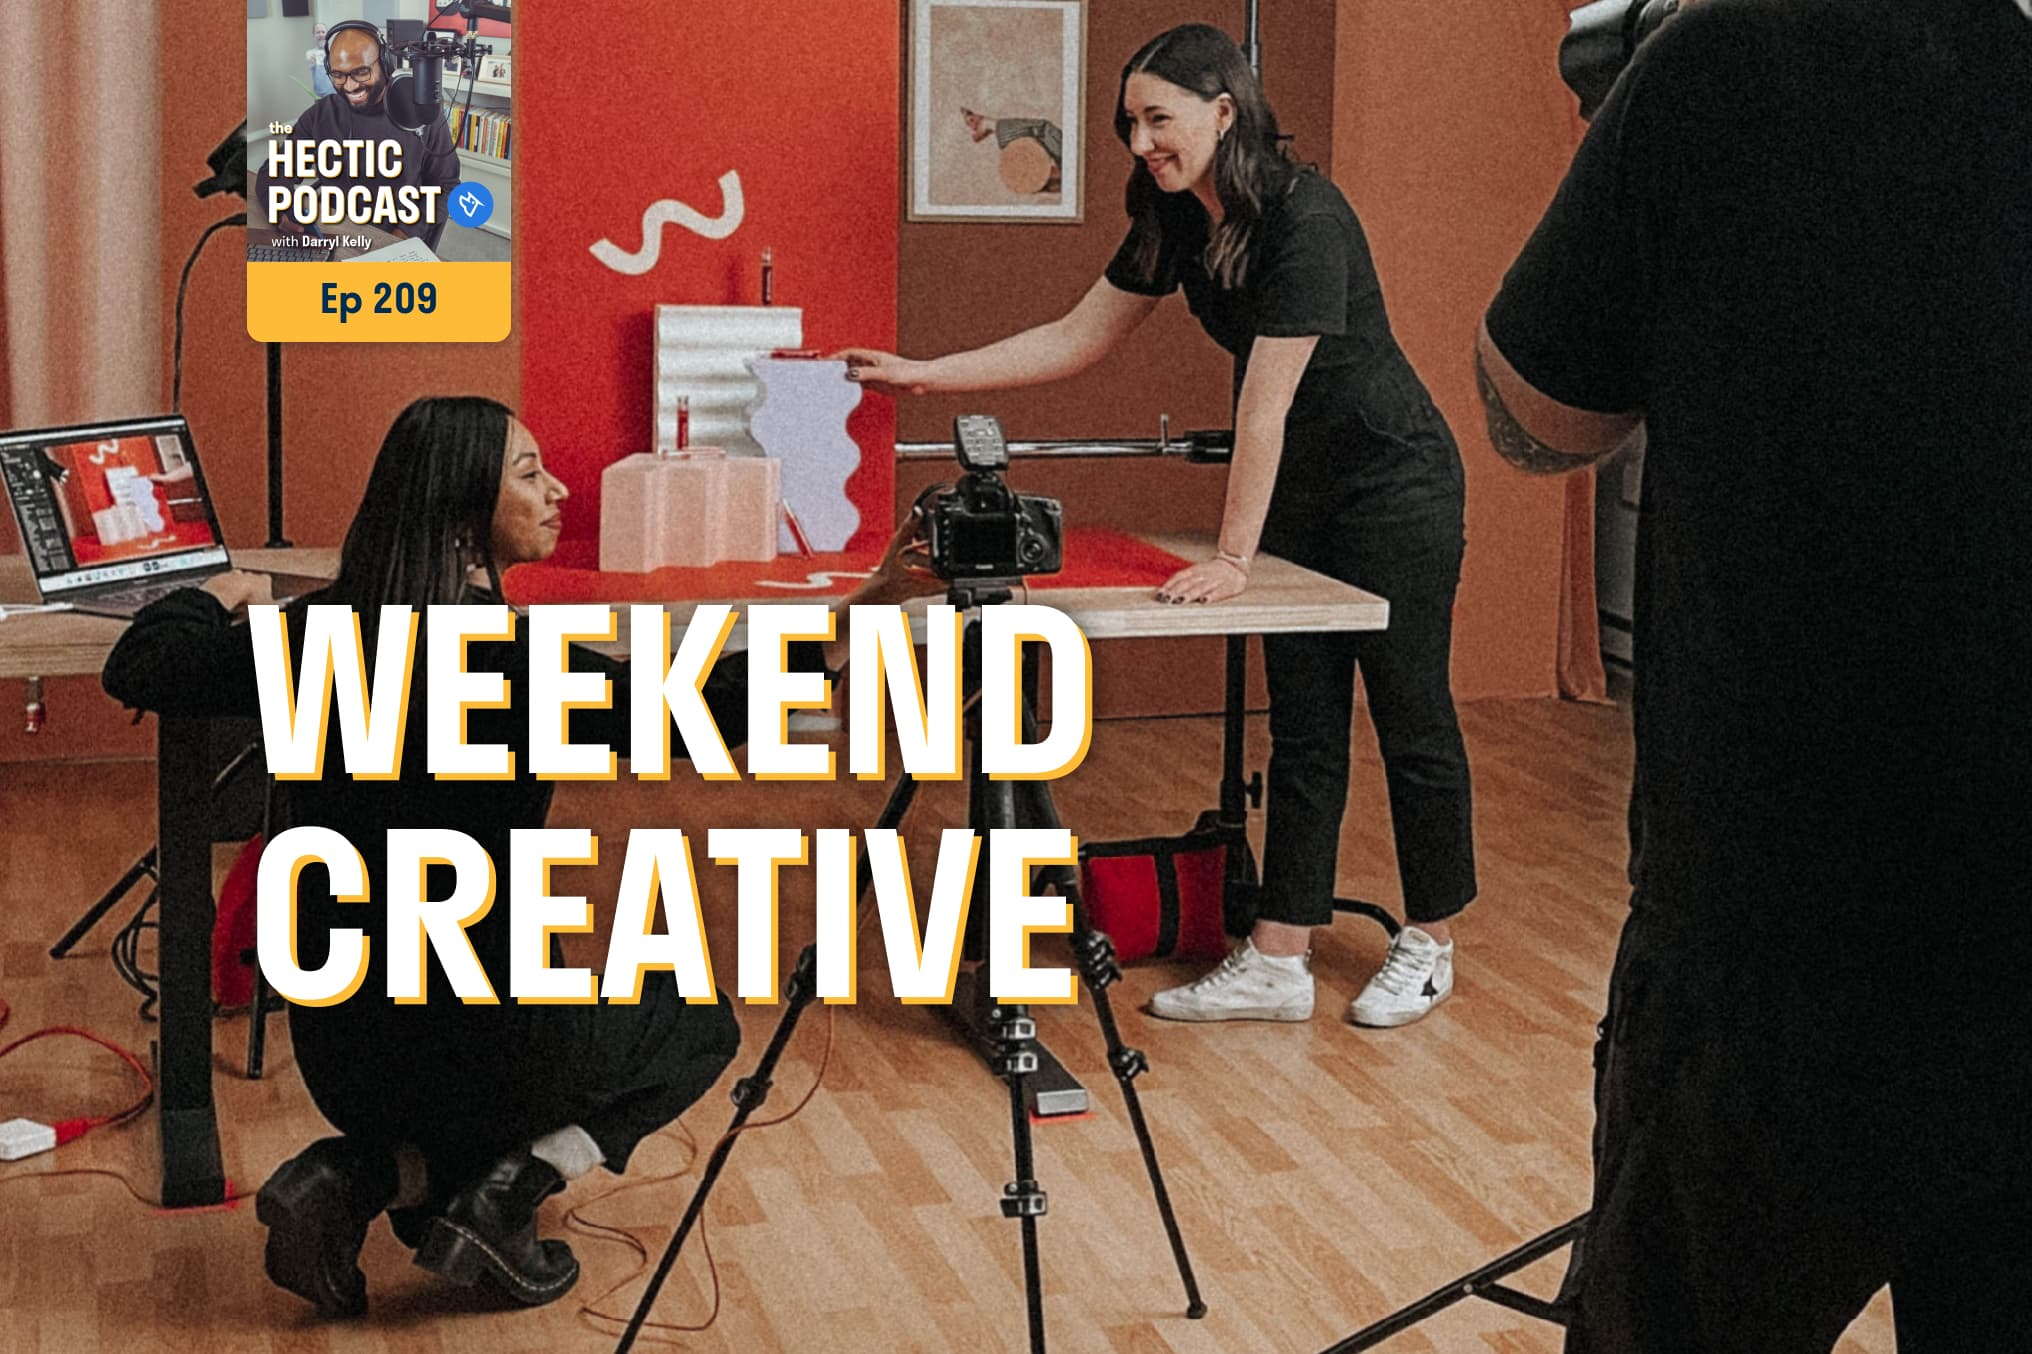 Weekend Creative and productivity isn't one size fits all